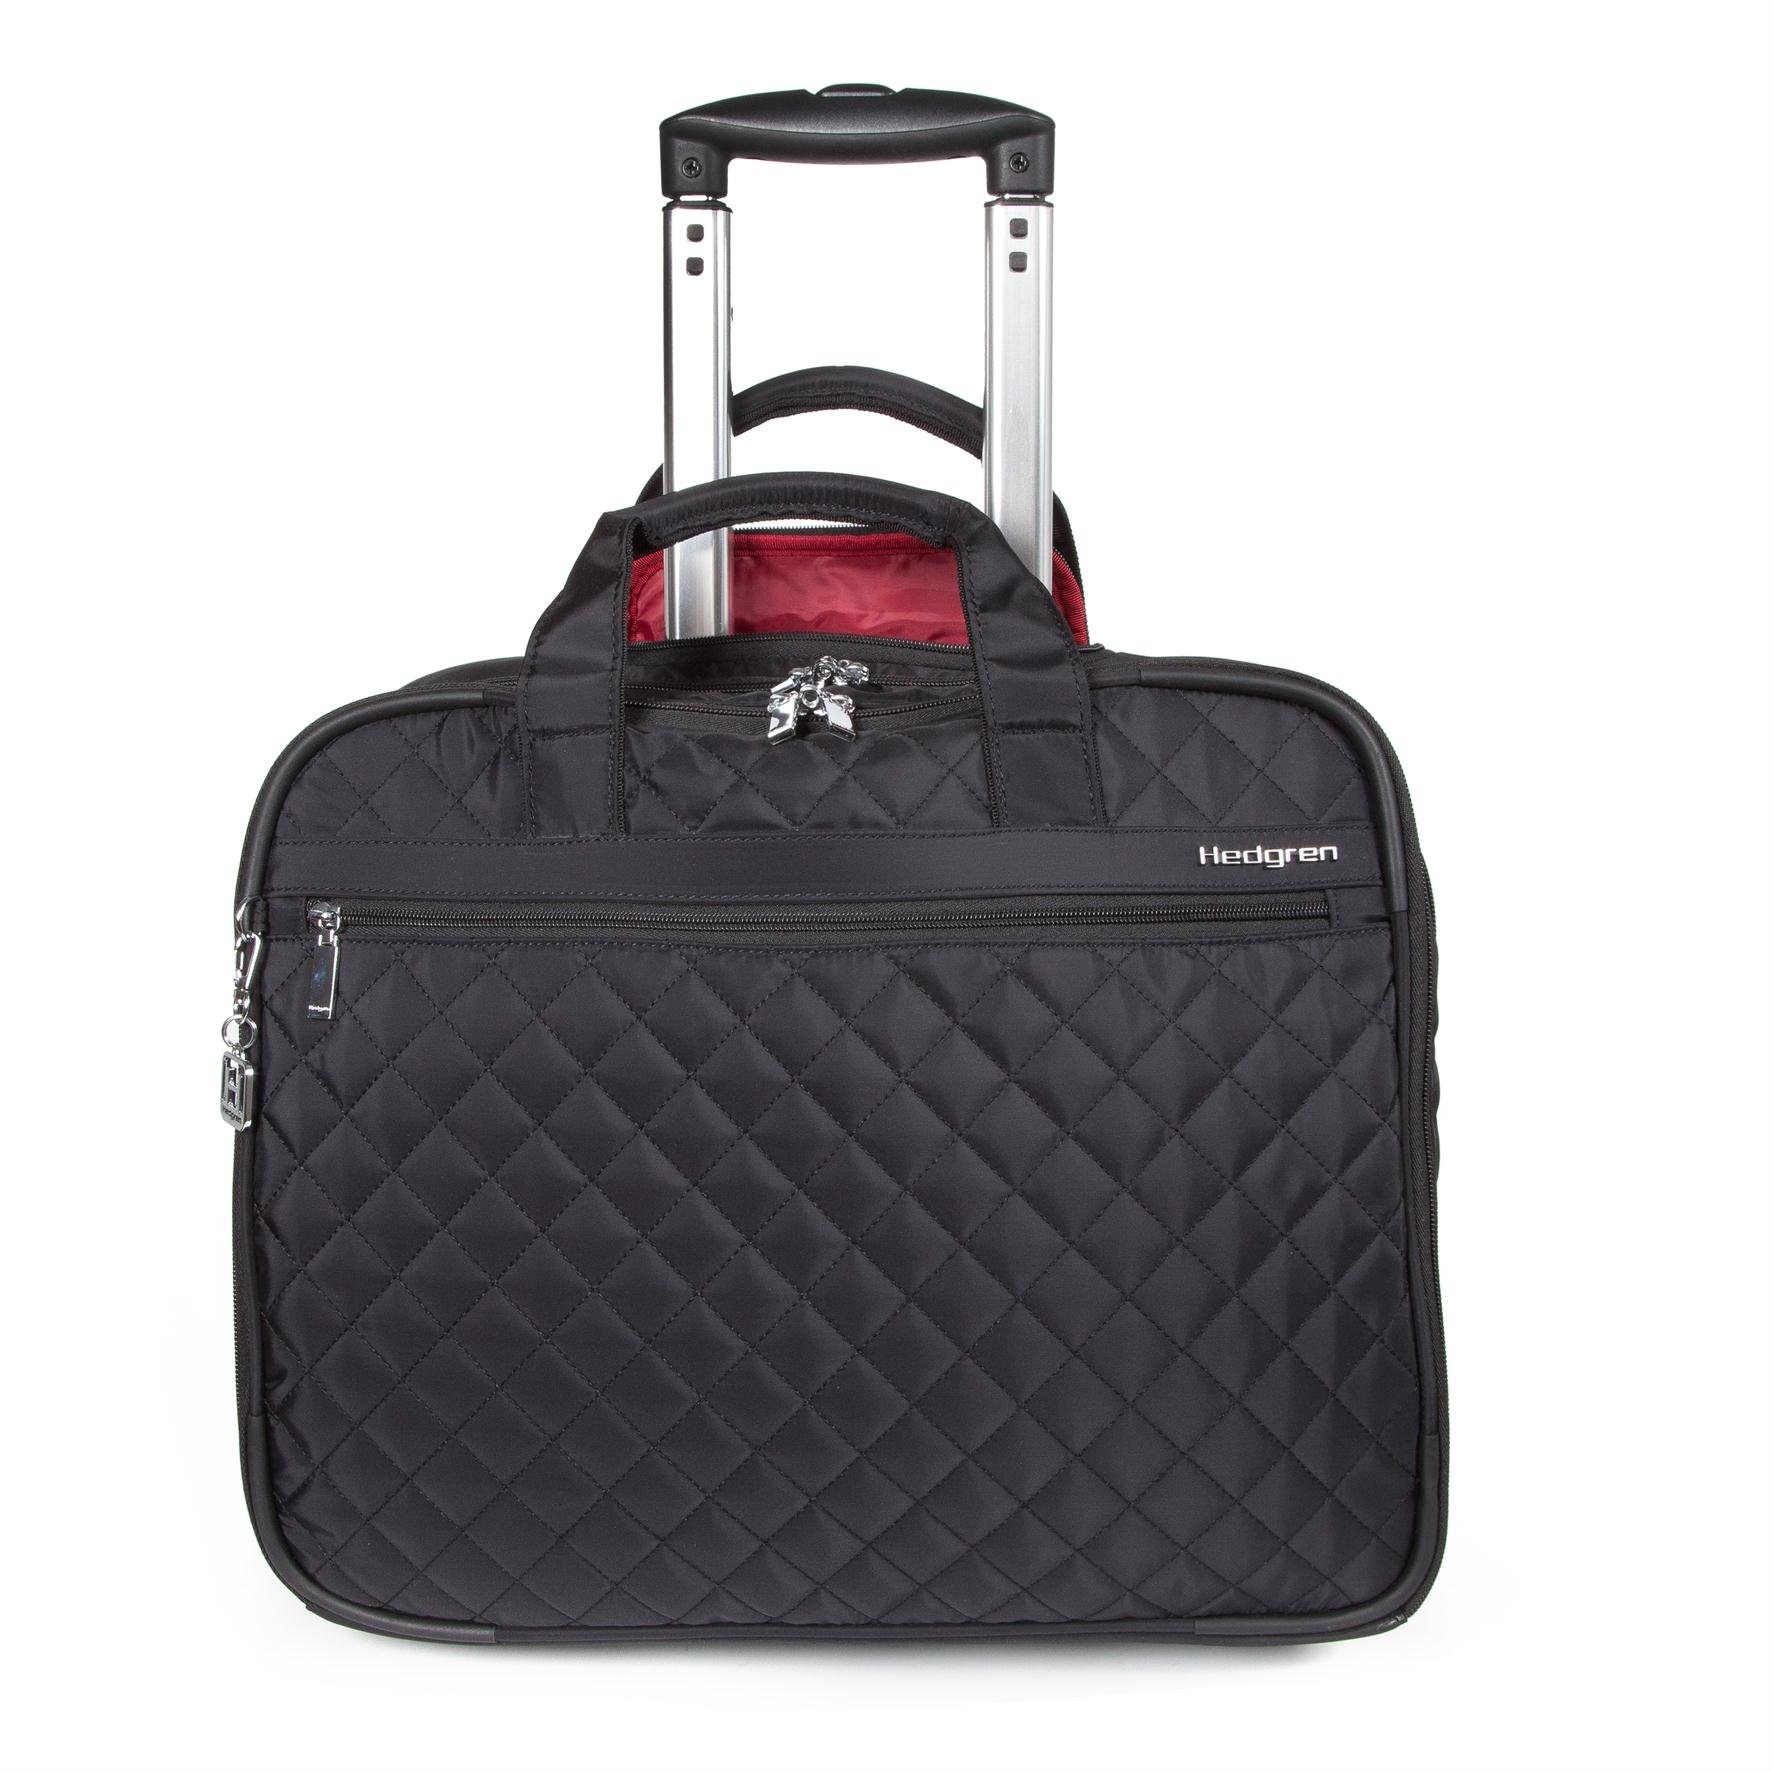 Hedgren Cindy Business Trolley 15.6 Briefcase, Black by Hedgren